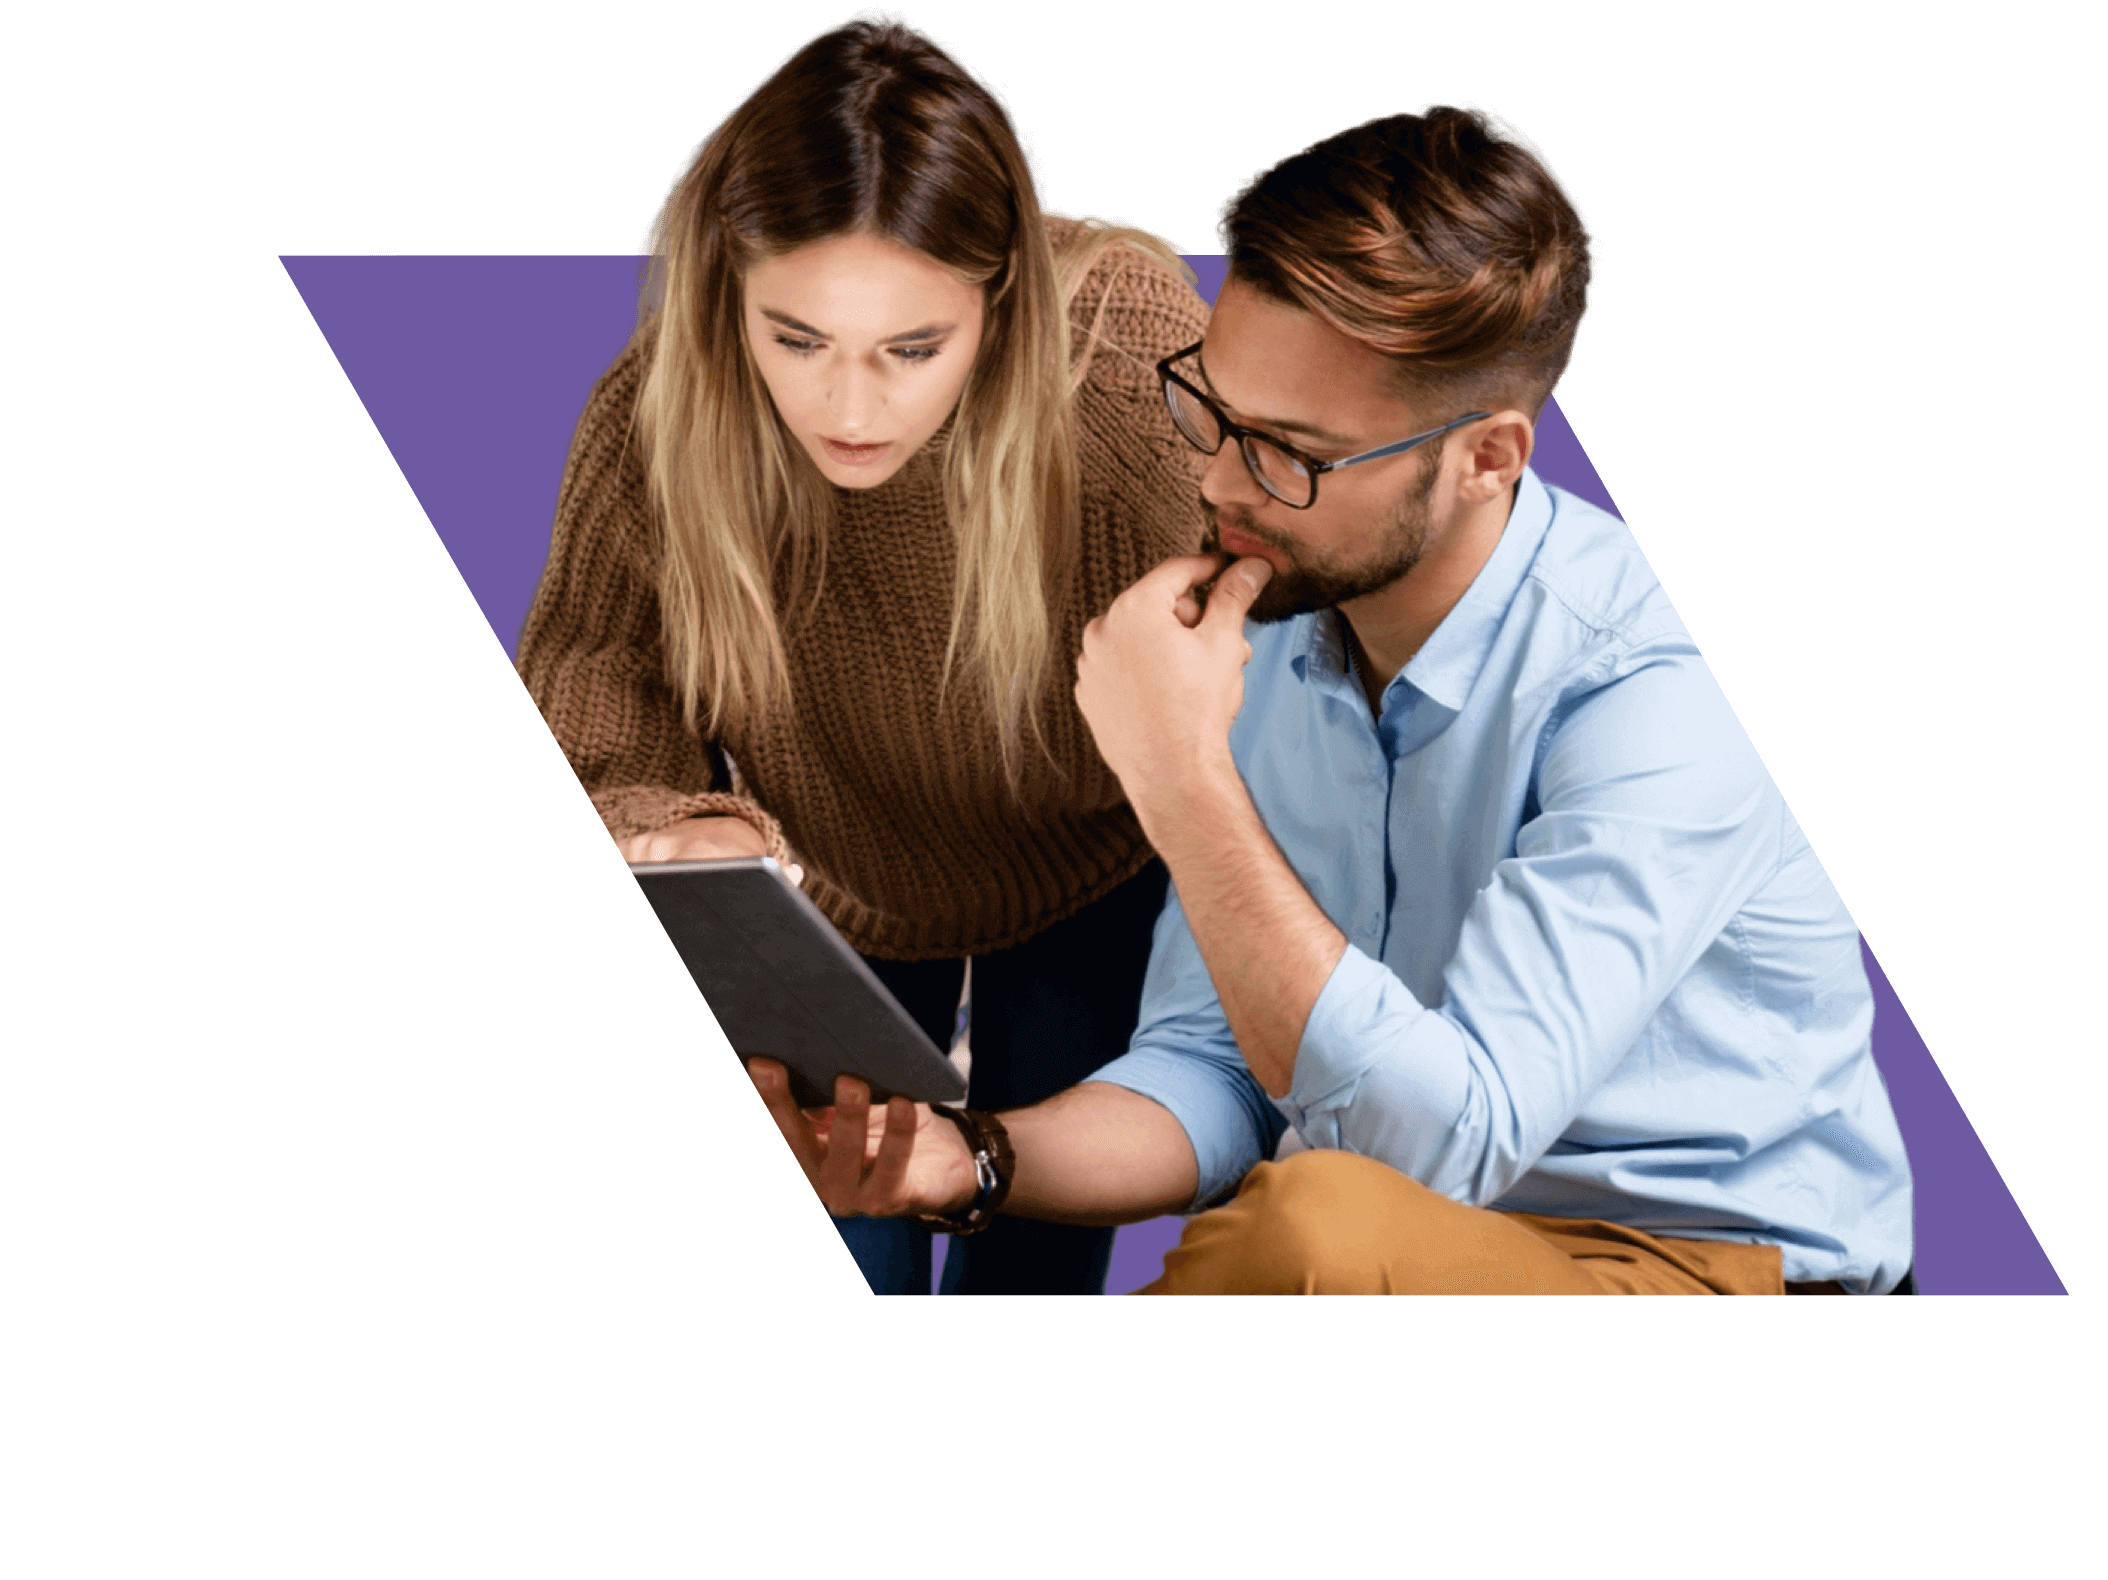 woman-and-man-reviewing-tablet-purple@2x